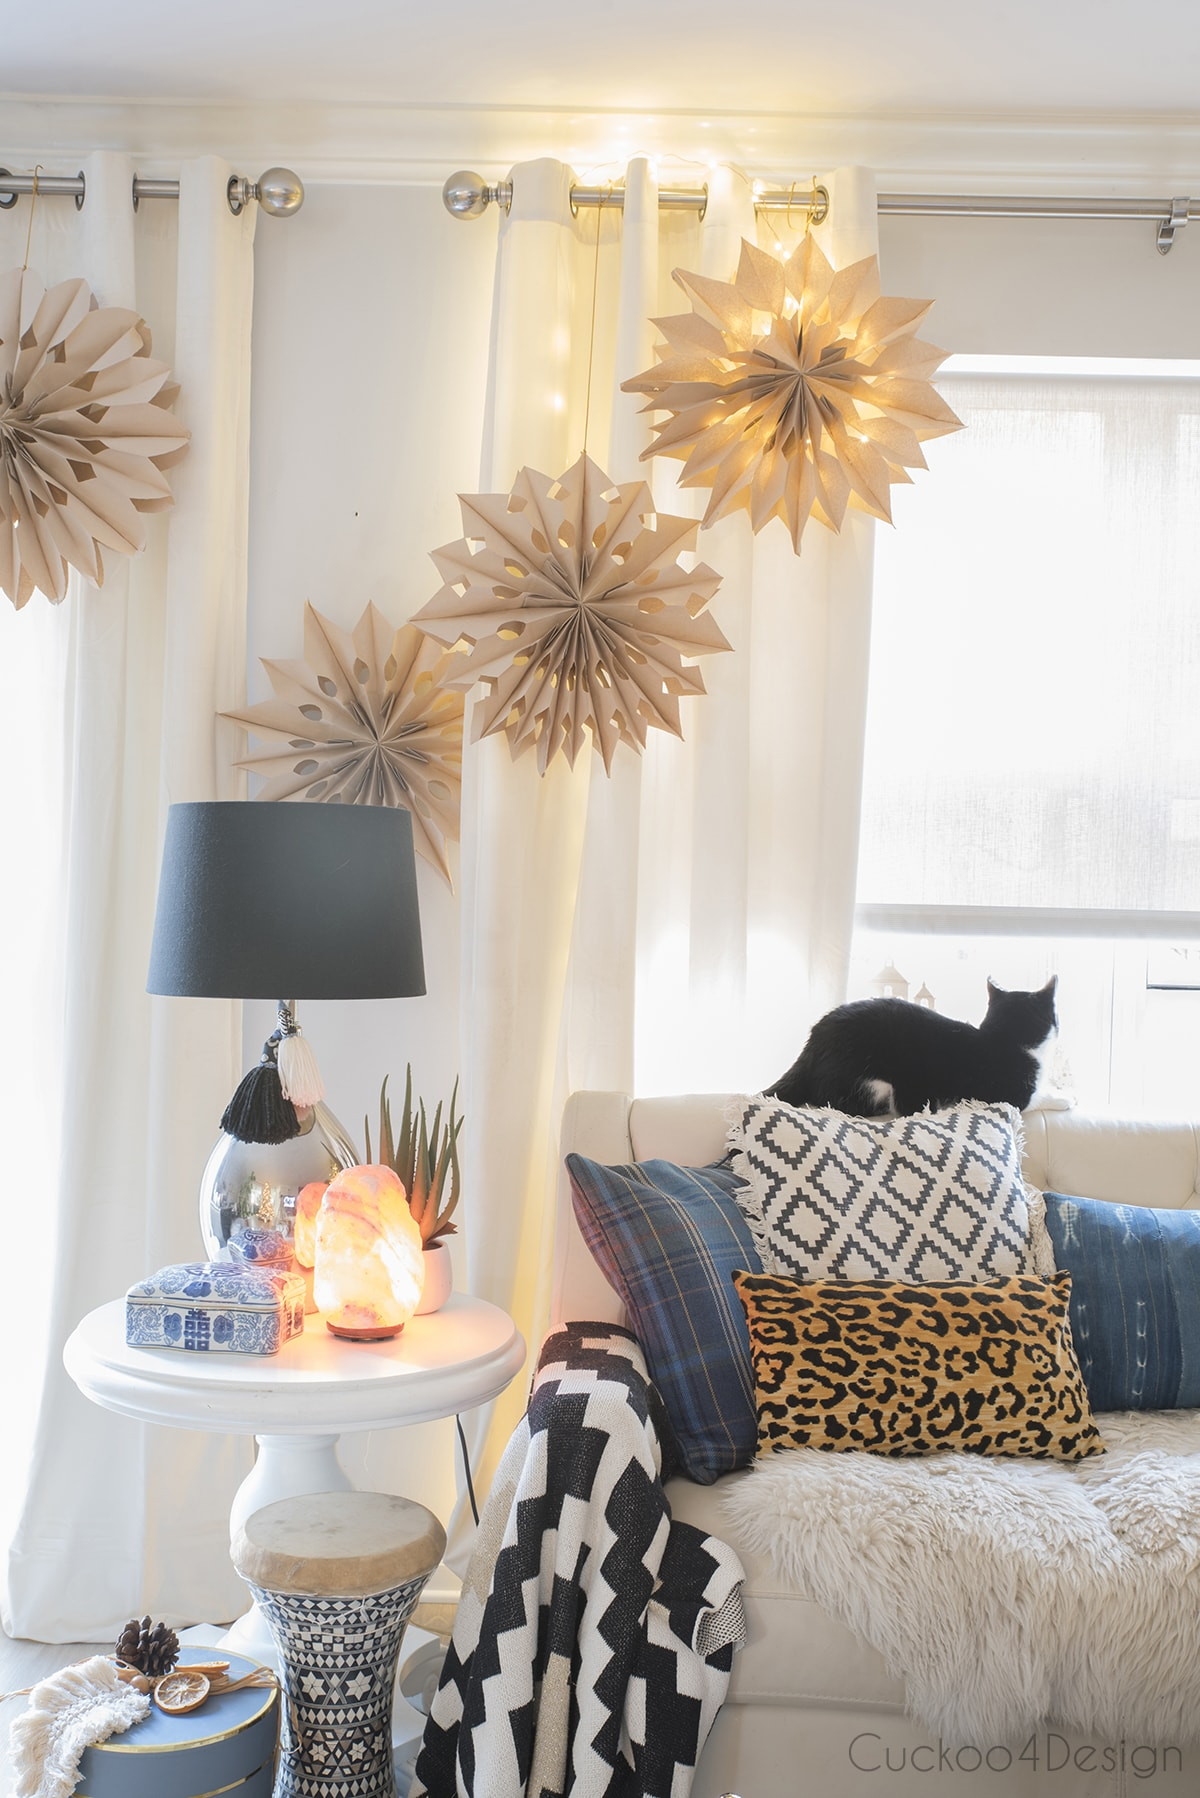 3D snowflakes hanging on living room curtain